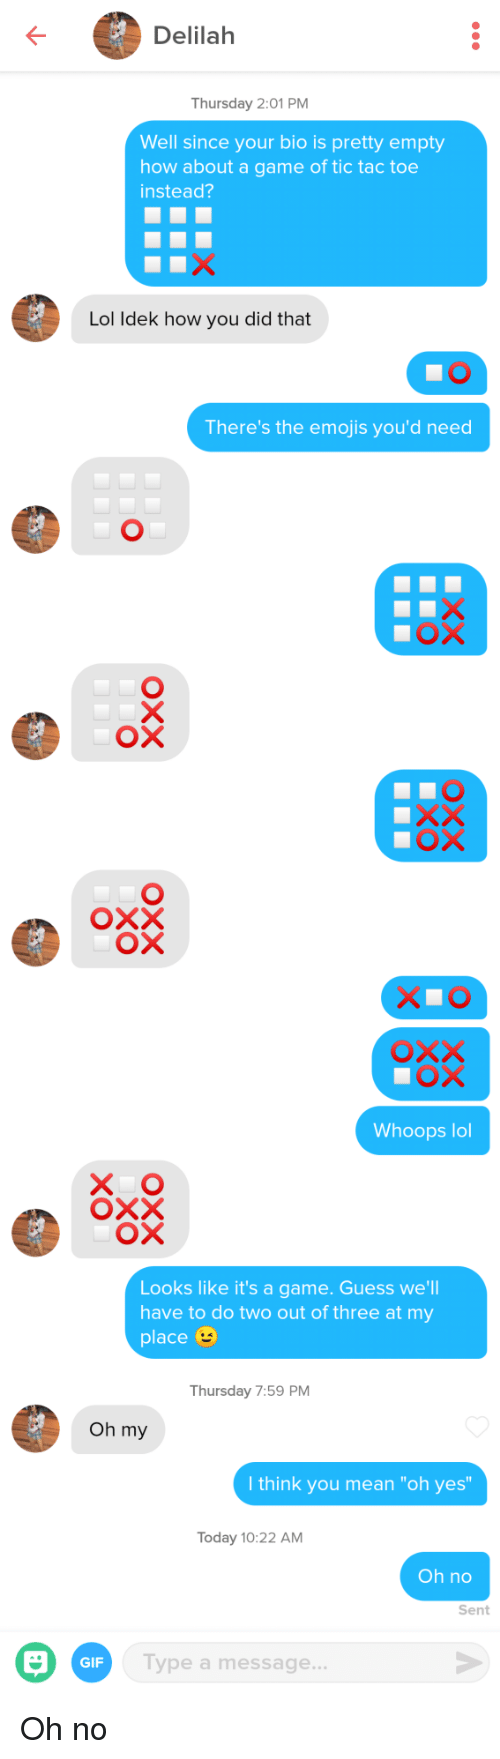 """The Emojis: Delilah  Thursday 2:01 PM  Well since your bio is pretty empty  how about a game of tic tac toe  instead?  Lol ldek how you did that  There's the emojis you'd need  ох  Whoops lol  X O  Looks like it's a game. Guess we'll  have to do two out of three at my  place  Thursday 7:59 PM  Oh my  I think you mean """"oh yes  Today 10:22 AM  Oh no  Sent  GIF  Type a message Oh no"""